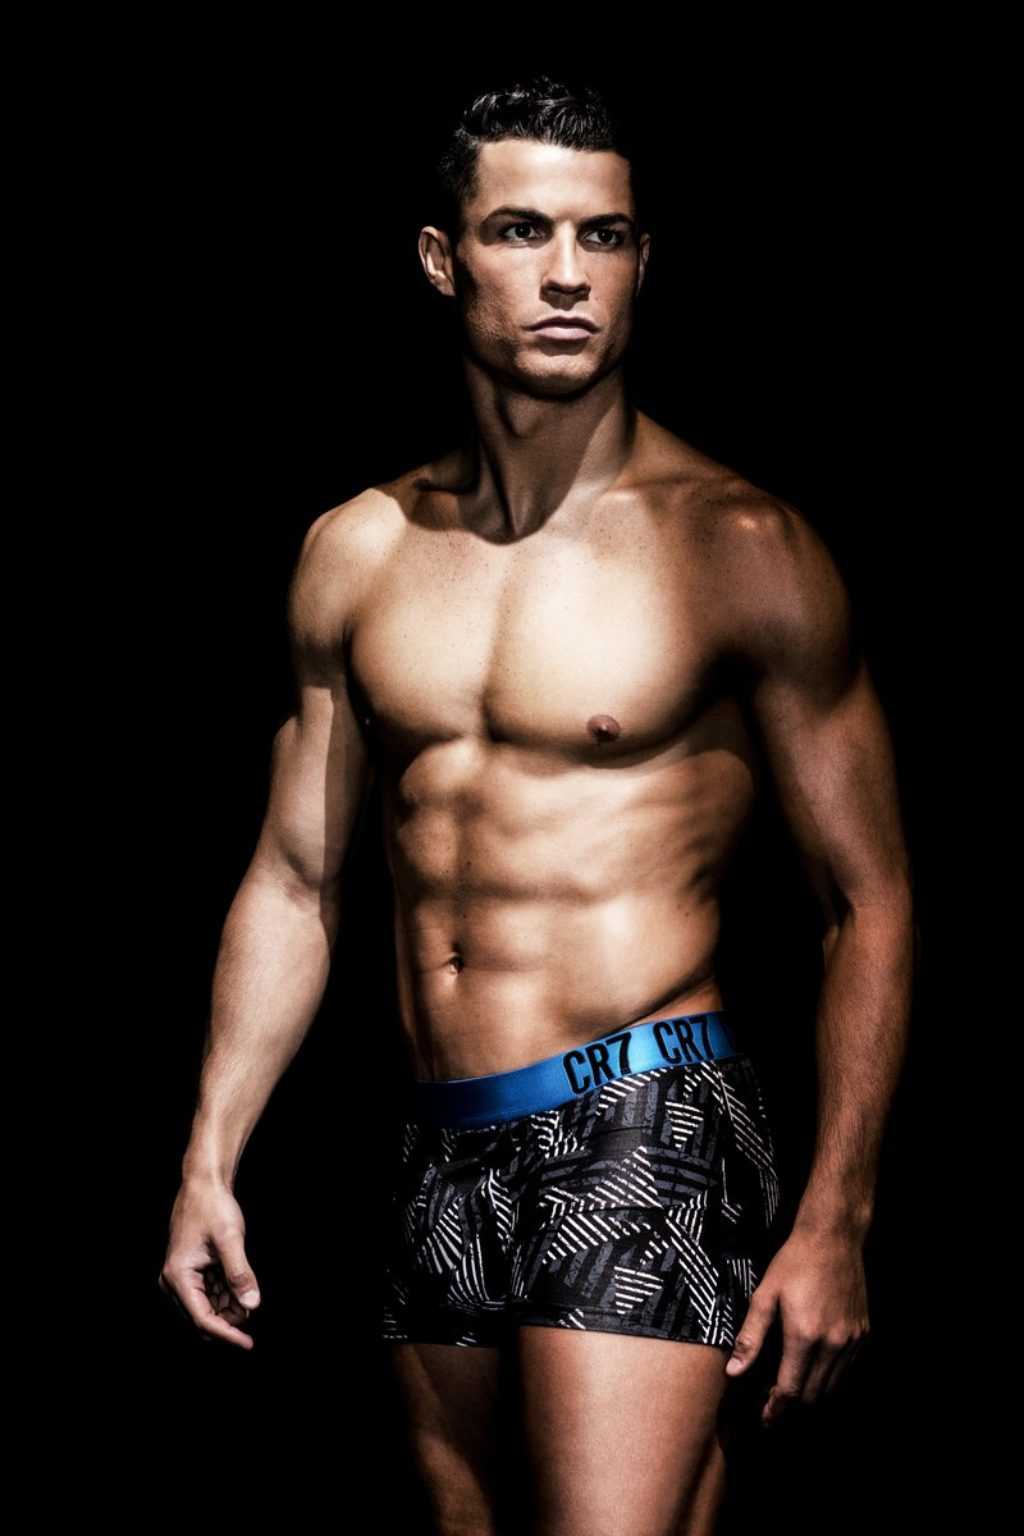 Hero shot of Cristiano Ronaldo CR7 underwear with blue border and black trunks